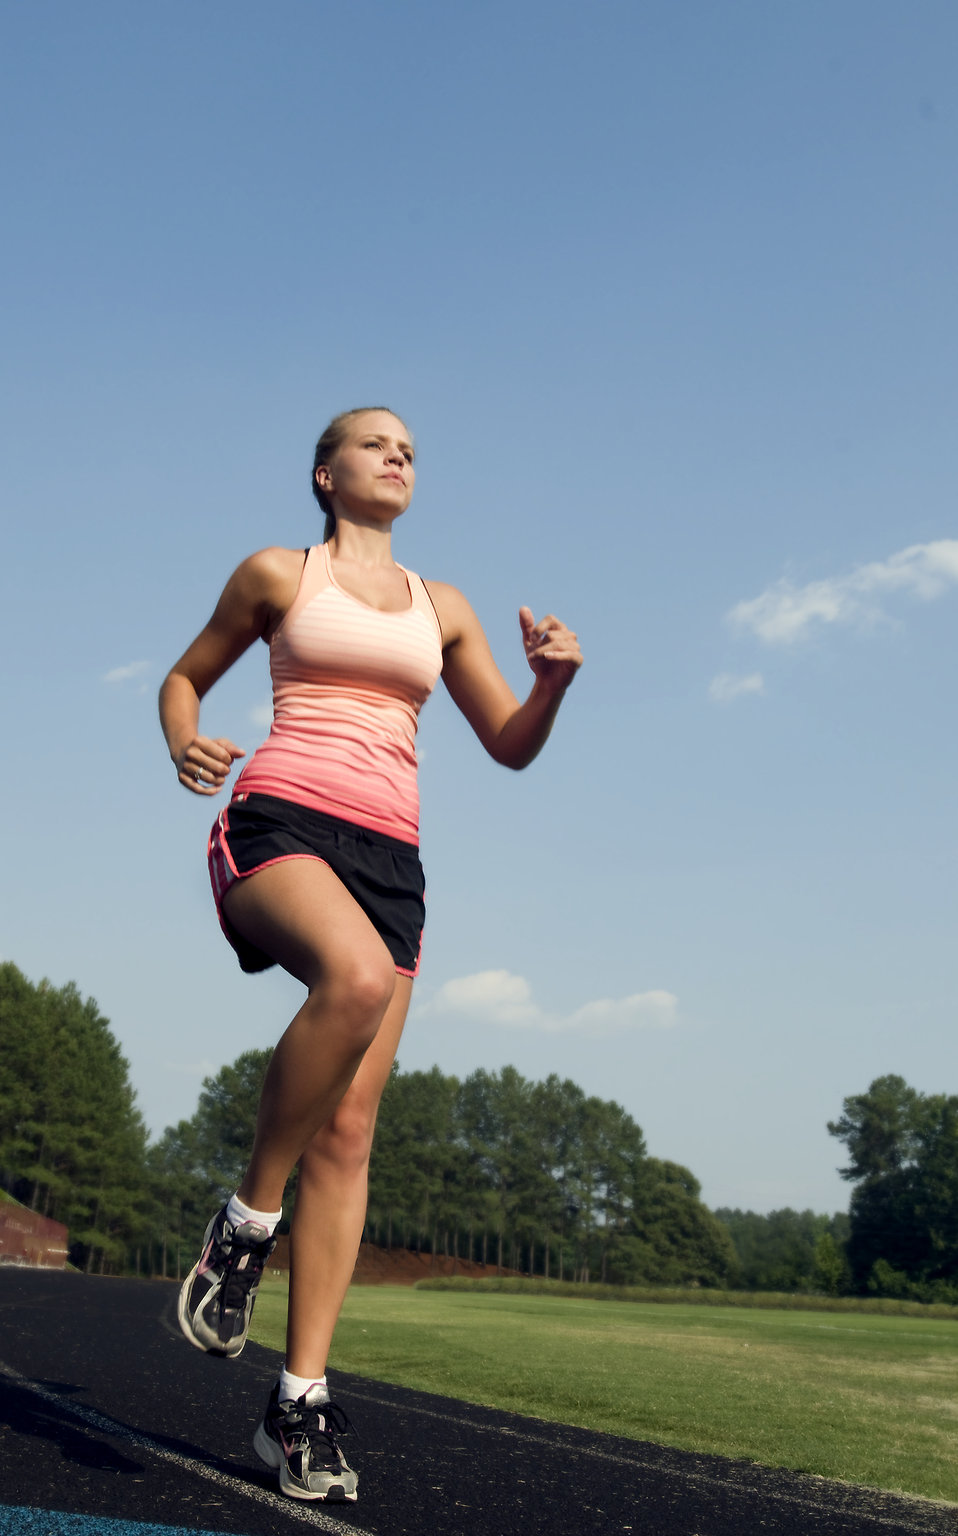 15322-a-healthy-young-woman-running-outdoors-on-a-track-pv